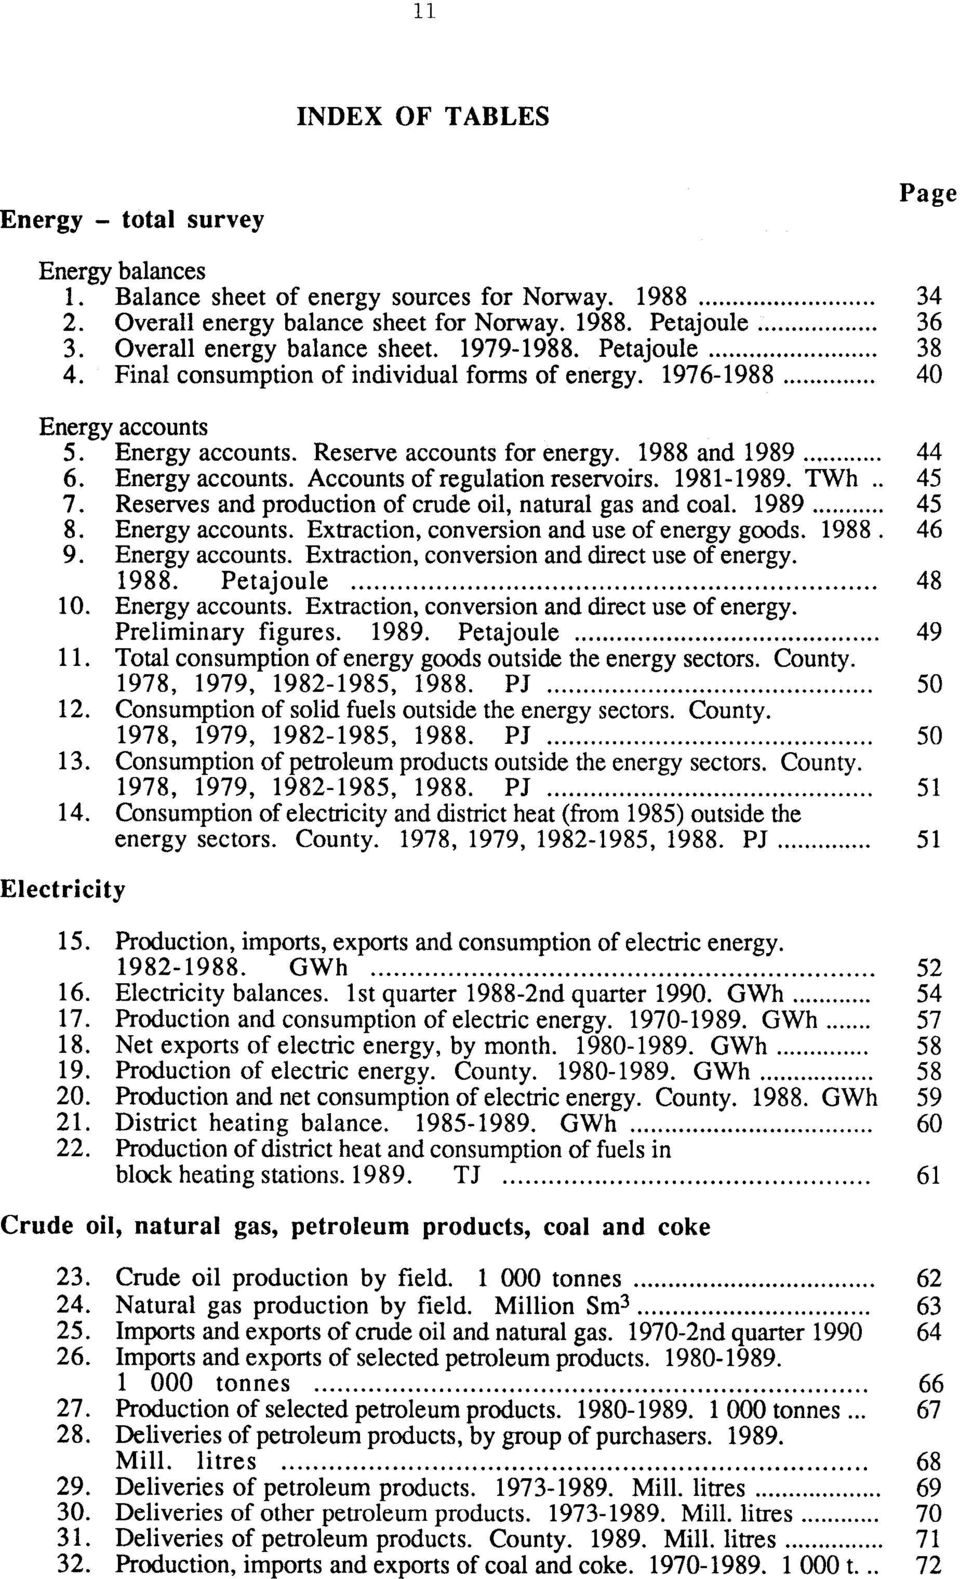 1988 and 1989 44 6. Energy accounts. Accounts of regulation reservoirs. 19811989. TWh 45 7. Reserves and production of crude oil, natural gas and coal. 1989 45 8. Energy accounts. Extraction, conversion and use of energy goods.